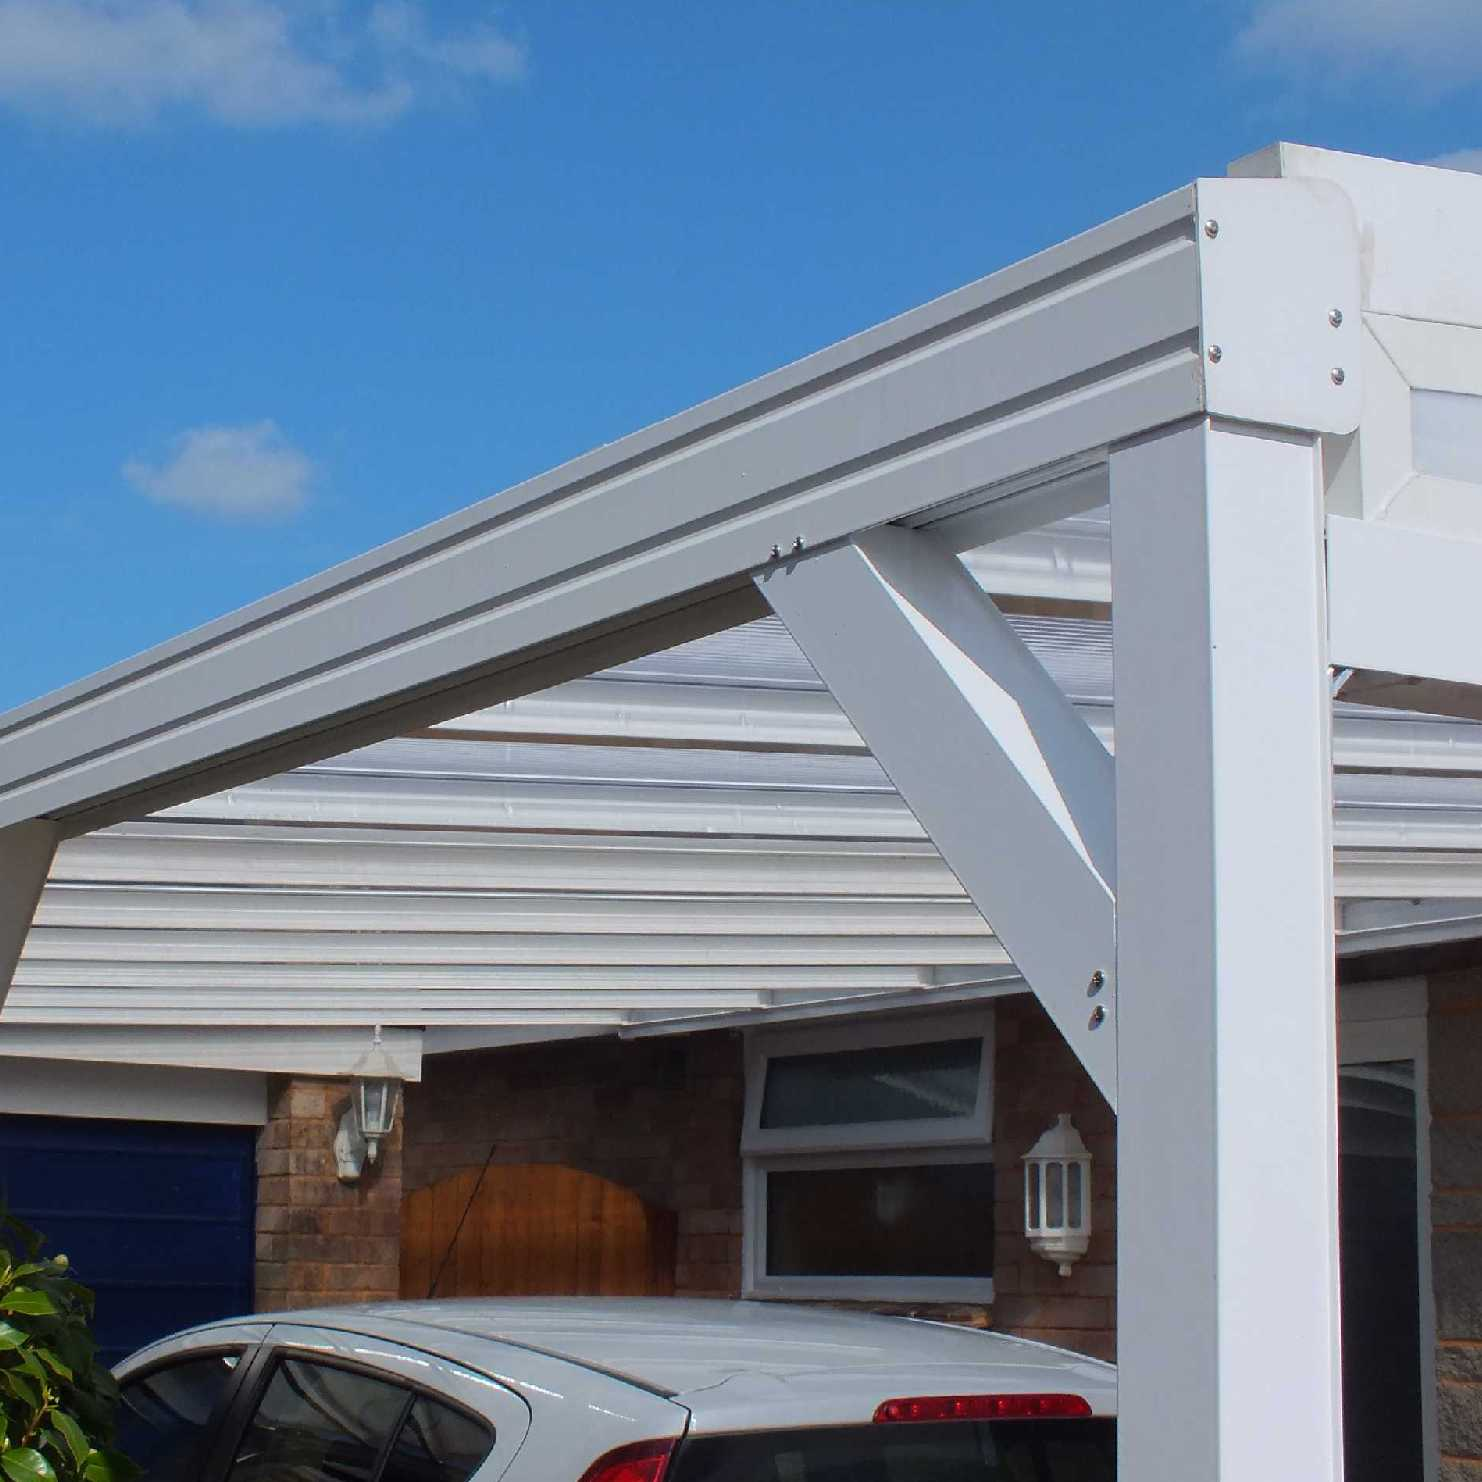 Great deals on Omega Smart White Lean-To Canopy with 16mm Polycarbonate Glazing - 6.3m (W) x 4.0m (P), (4) Supporting Posts